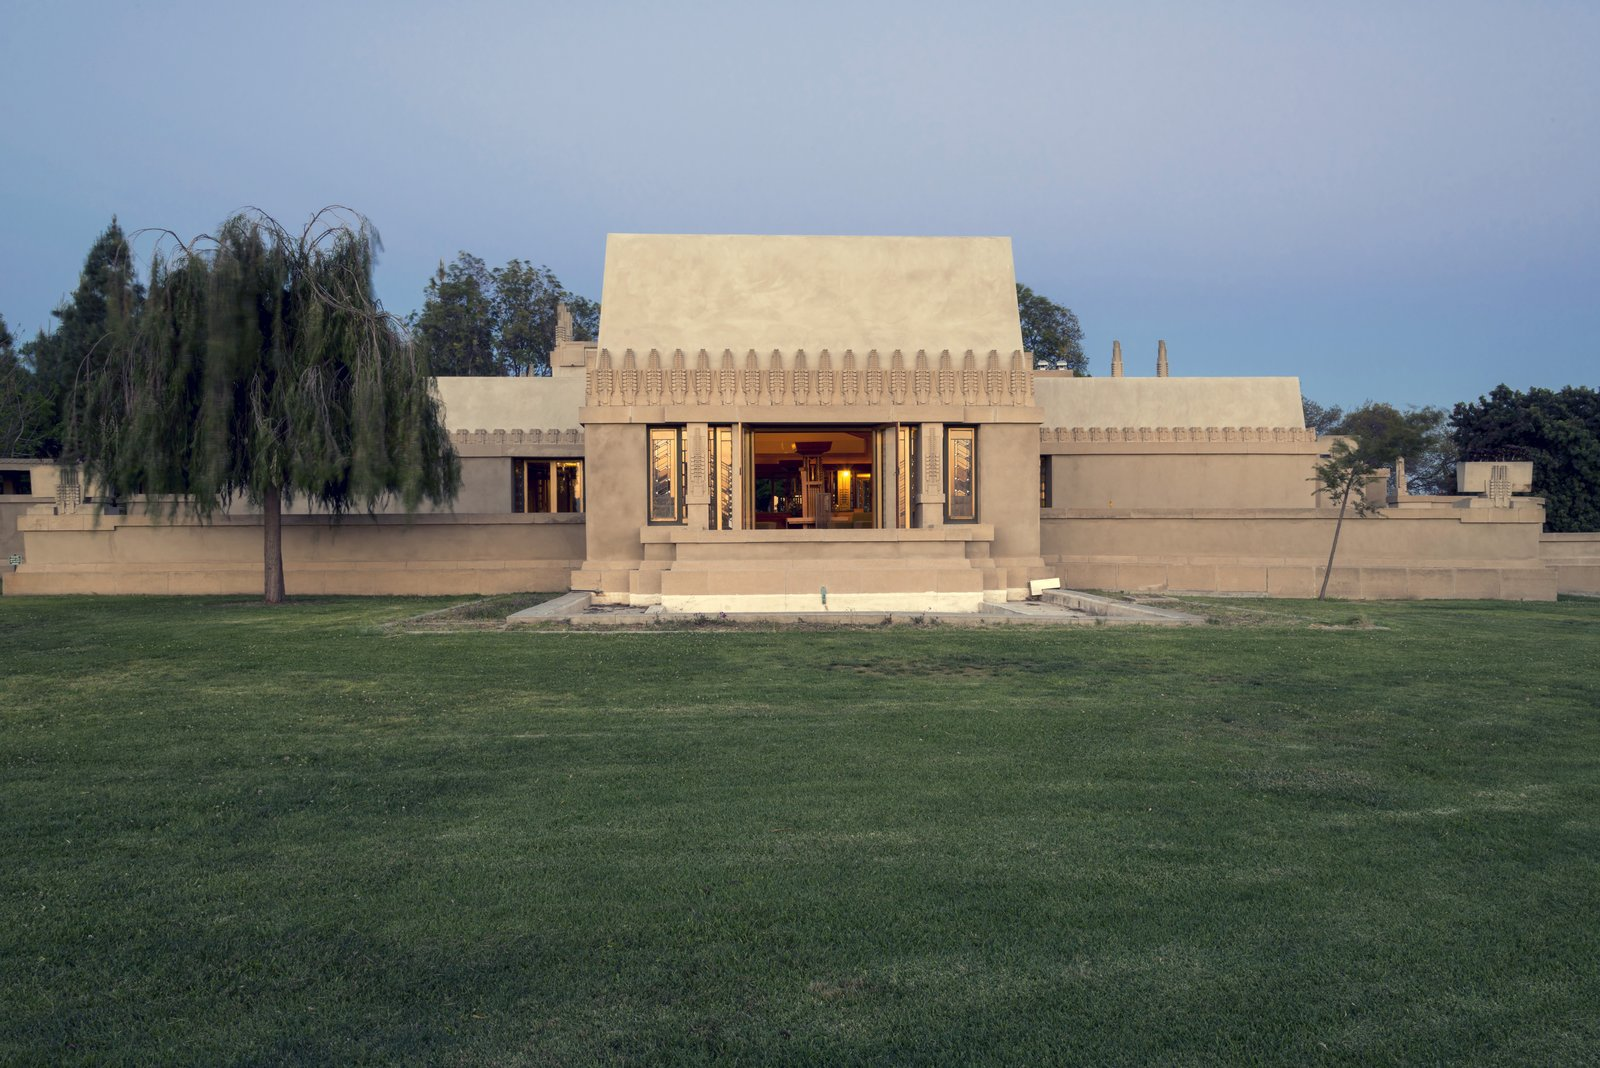 Hollyhock House (1918, Los Angeles, California). This residence, the architect's first commission in Southern California, revolves around a central patio and contains multiple rooftop terraces.  Iconic Frank Lloyd Wright Buildings by Allie Weiss